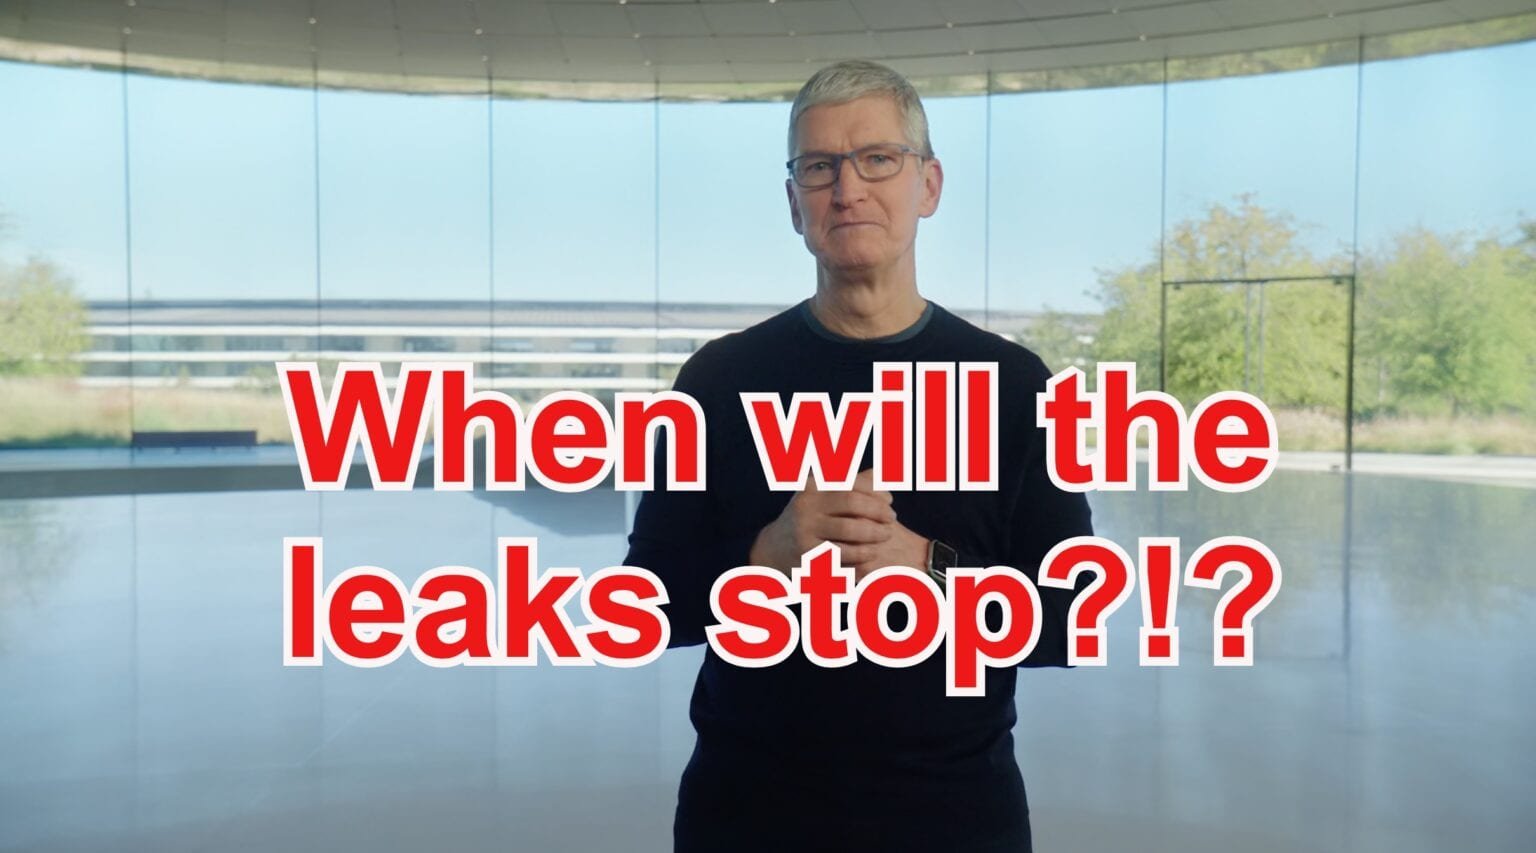 When will the Apple leaks stop?